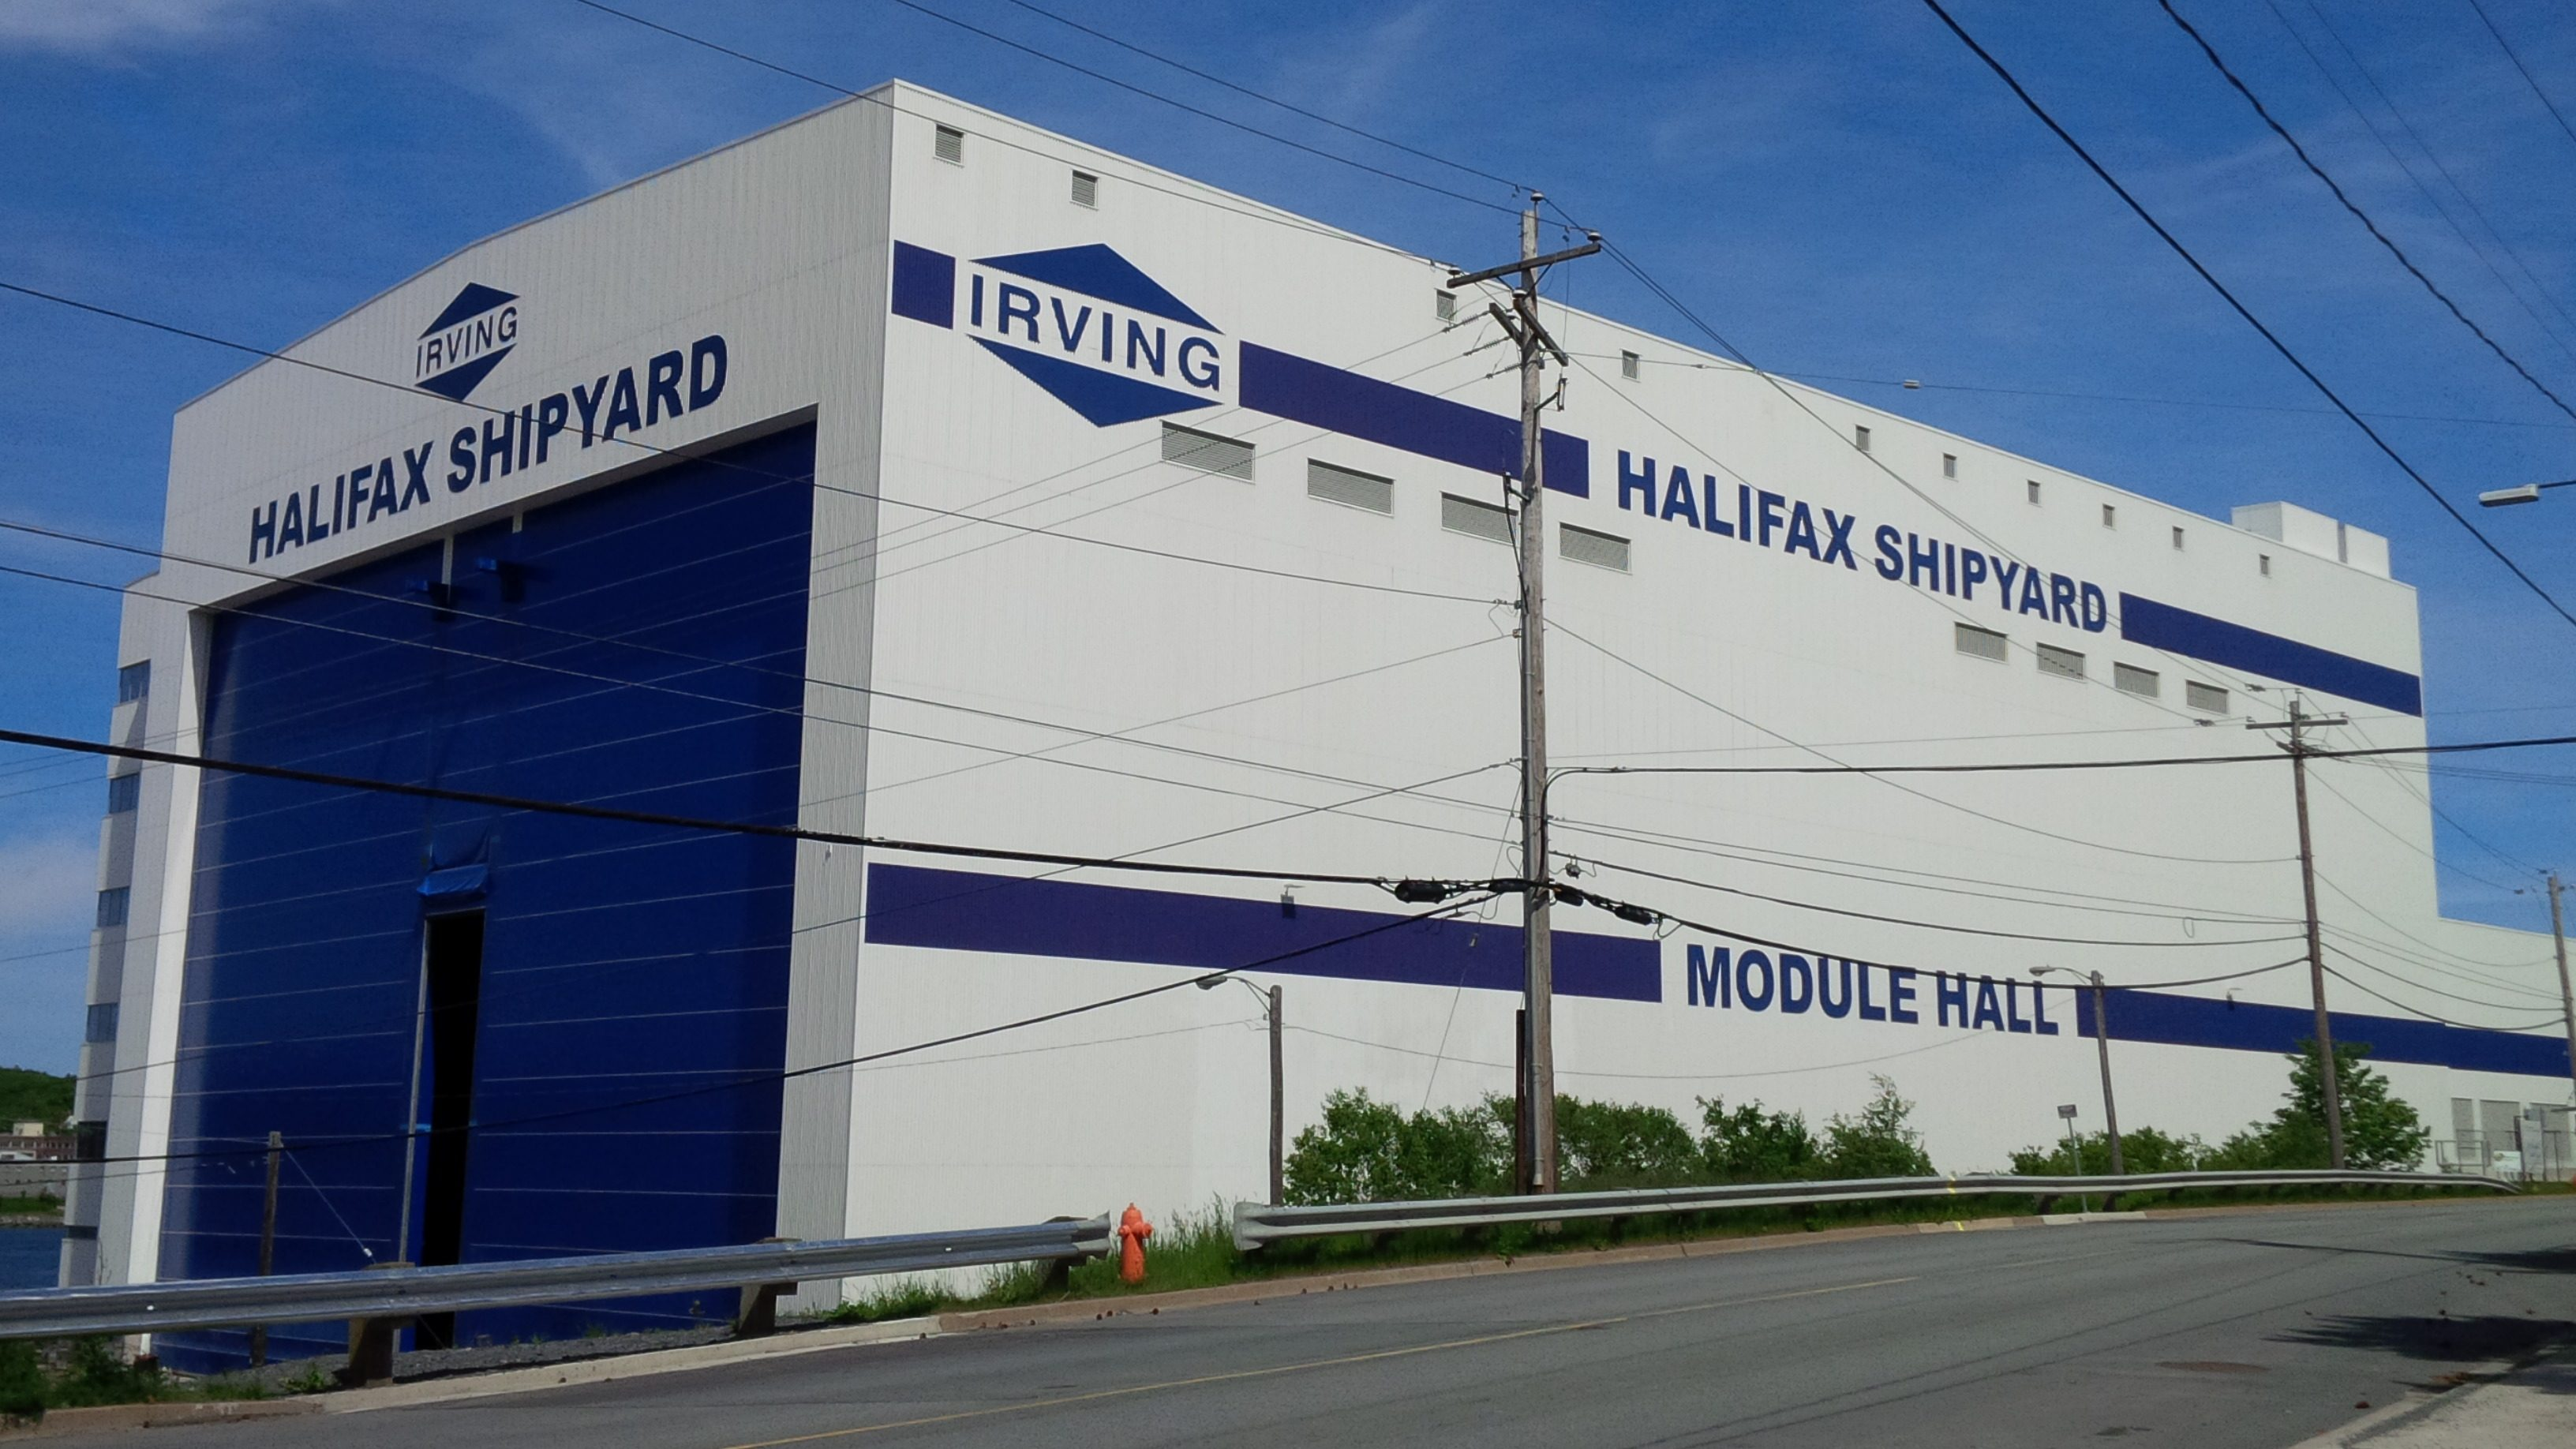 IRVING SHIPBUILDING INC (HALIFAX SHIPYARDS)